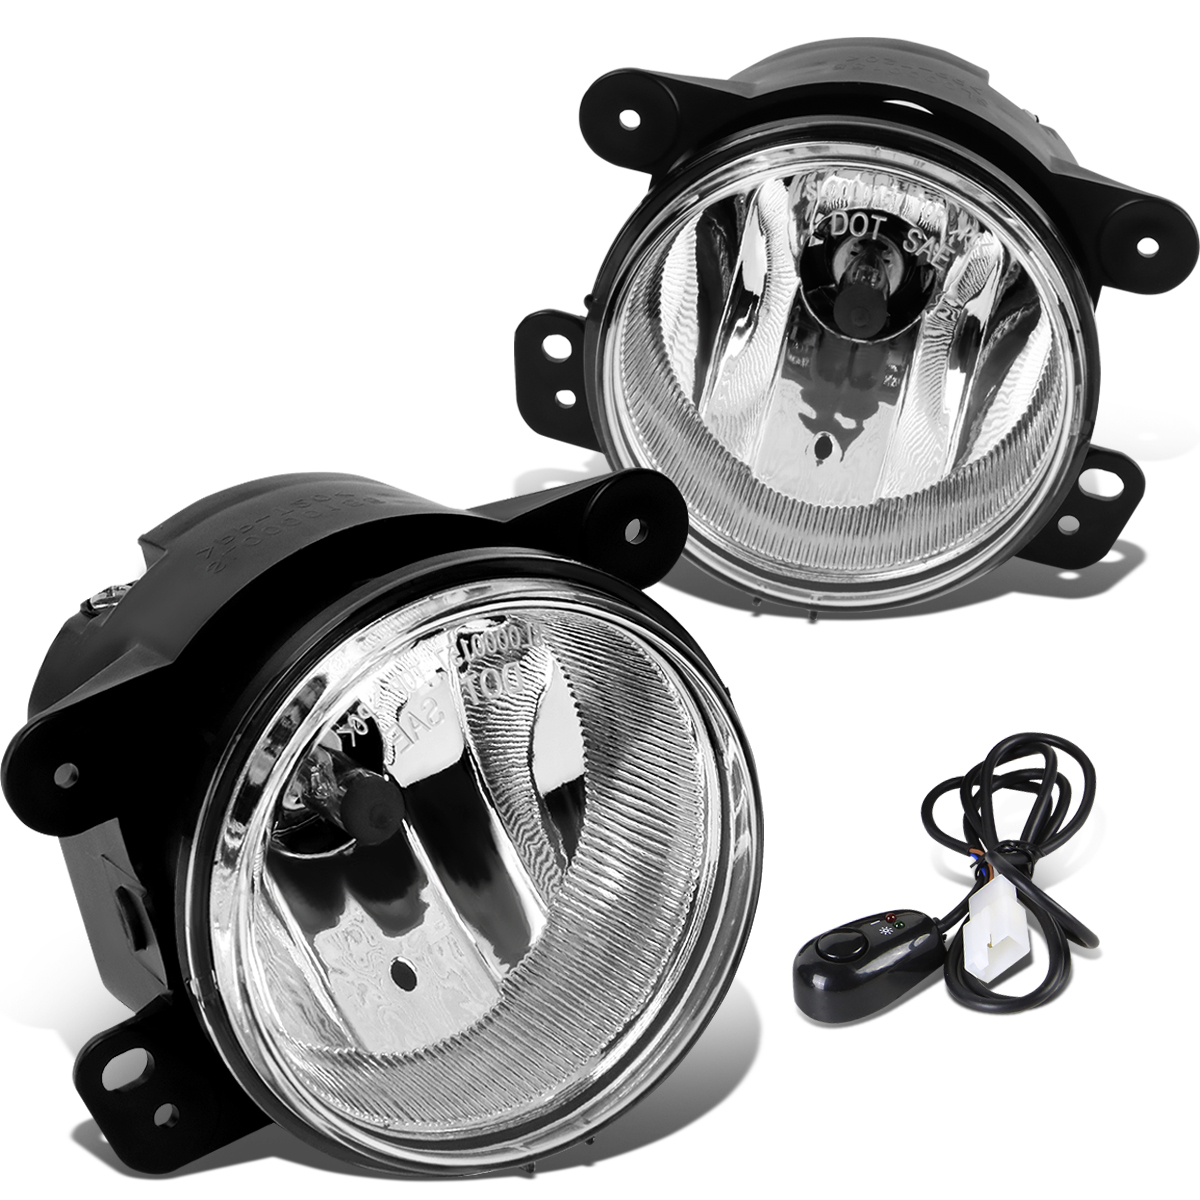 07-17 Jeep Wrangler JK Pair of Driving Bumper Fog Lights + ... on jeep wrangler dash lights, jeep wrangler bumper fog lights, jeep wrangler light kits, toyota tundra fog light wiring, jeep wrangler hid fog lights, jeep wrangler interior lights, chevy colorado fog light wiring, jeep wrangler led conversion, chrysler 300 fog light wiring, jeep cj7 engine wiring harness, jeep wrangler back up lights, jeep wrangler oem fog lights, jeep wrangler check engine light, mini cooper fog light wiring, jeep led grill lights, dodge ram 1500 fog light wiring, jeep wrangler alarm, jeep wrangler fog lights install, jeep wrangler led fog lights, ford ranger fog light wiring,